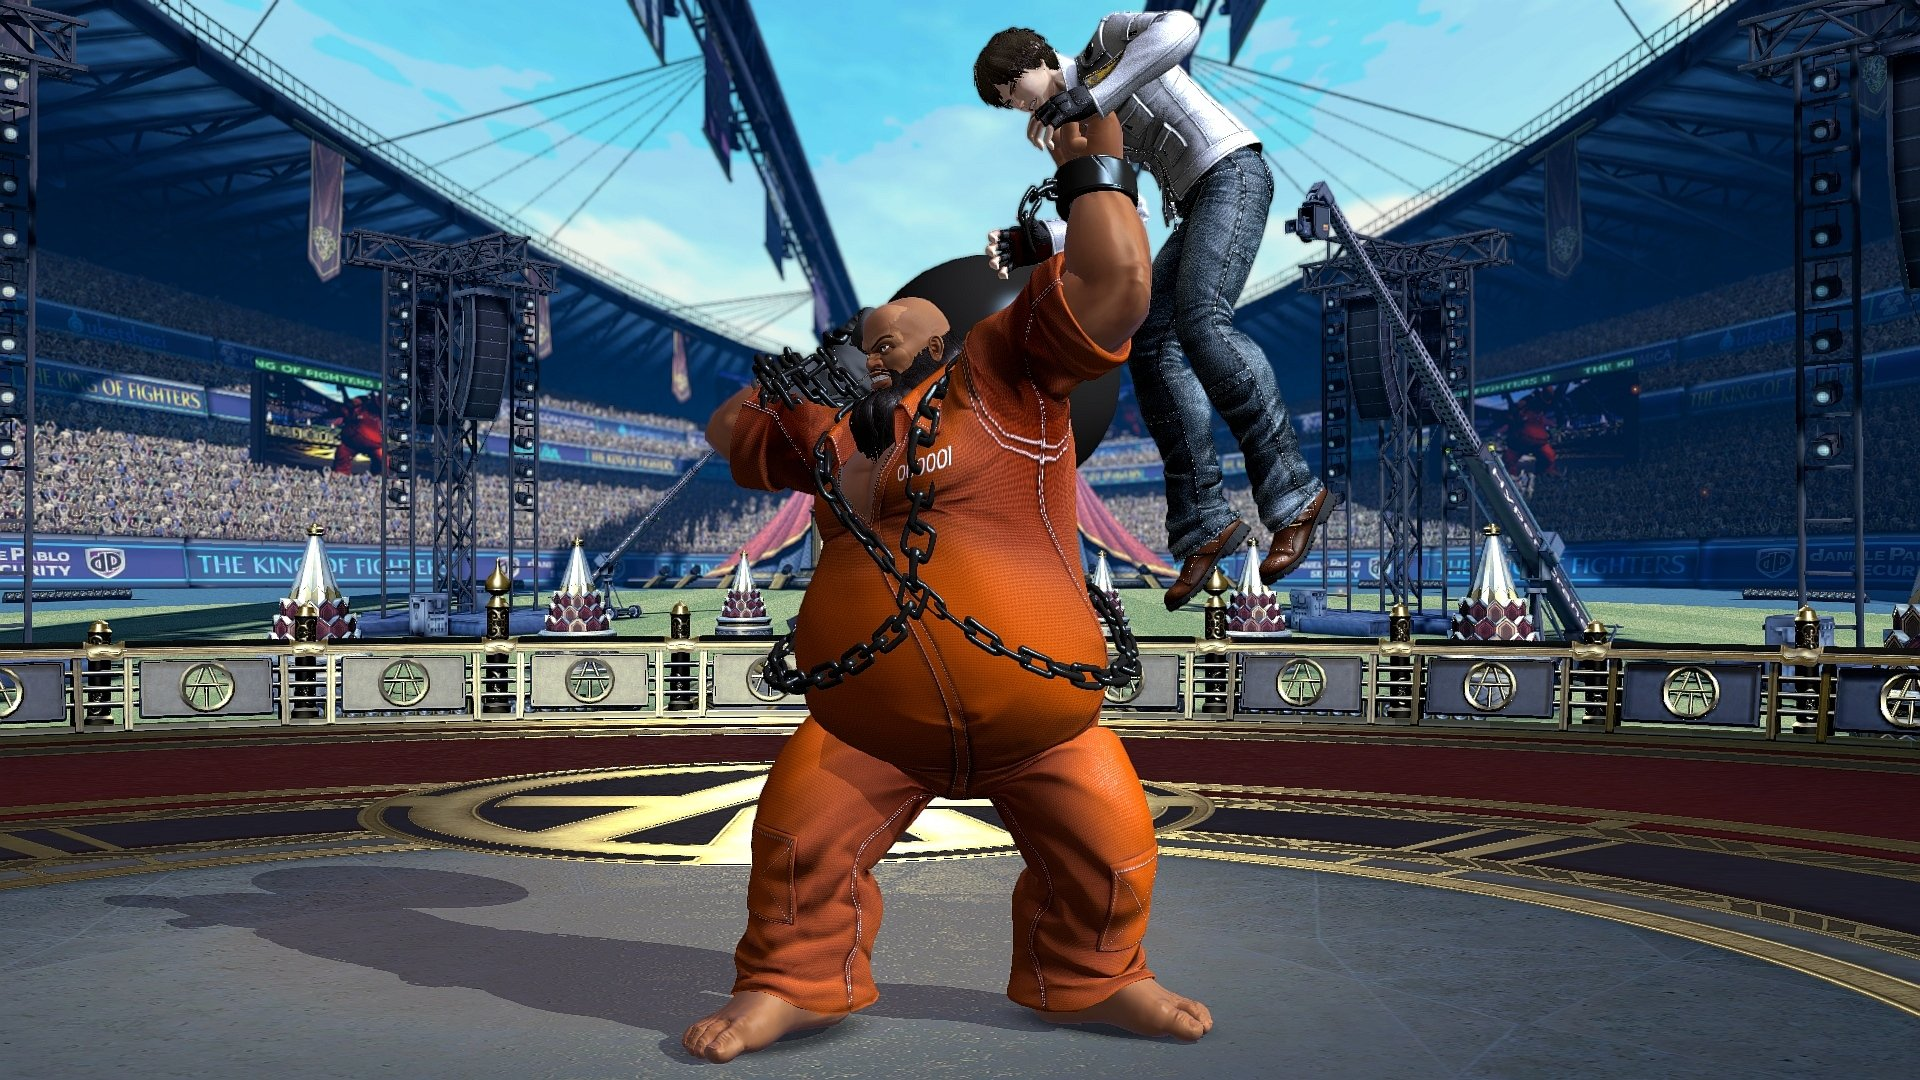 king_of_fighters_xiv-3253061.jpg